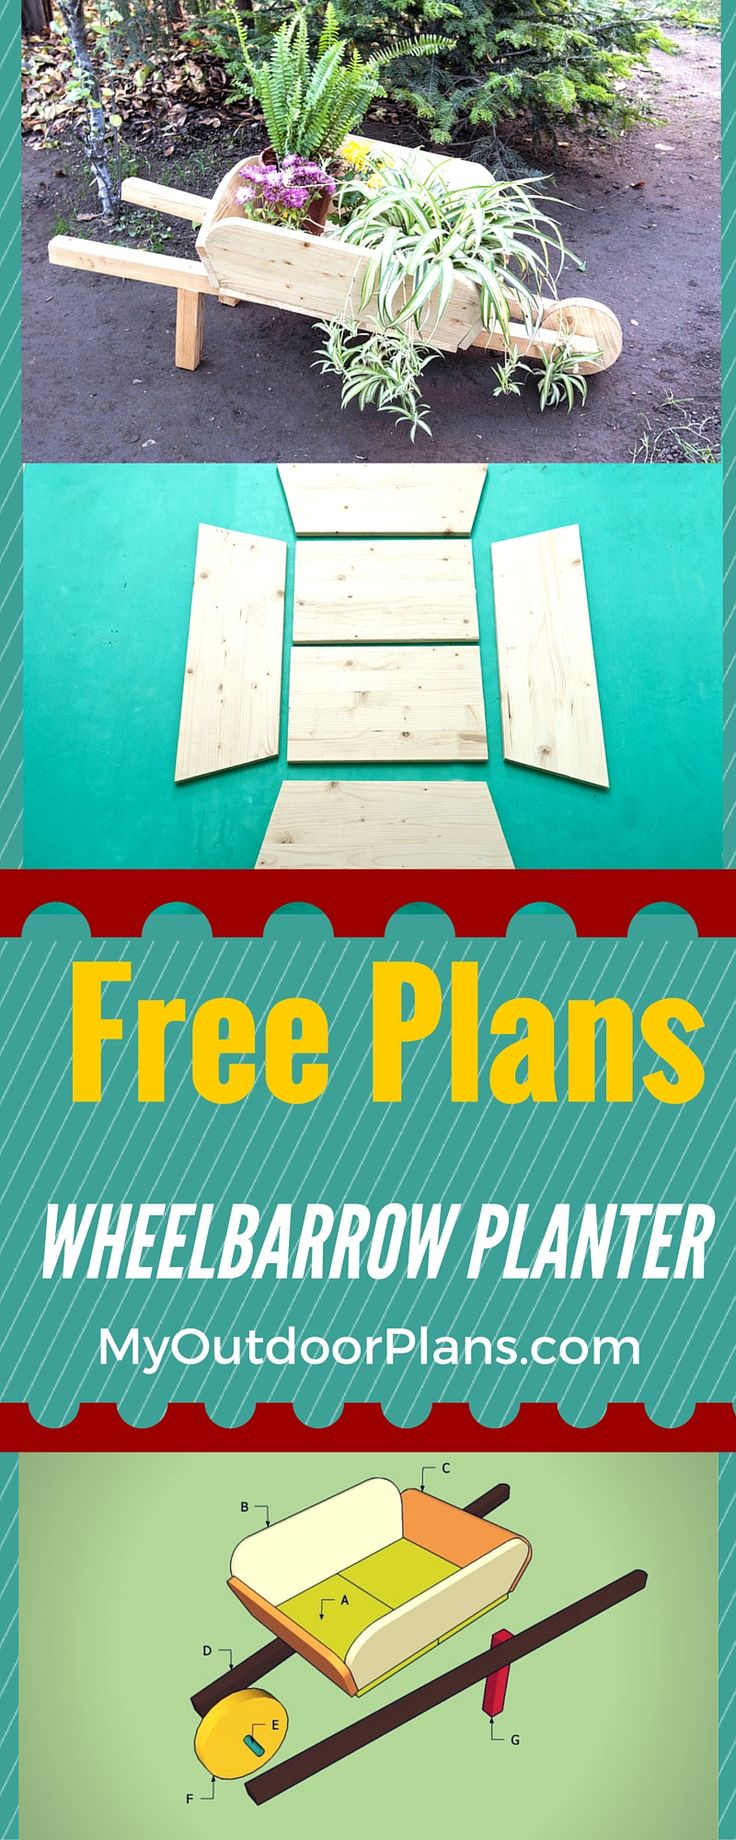 How to build a wheelbarrow planter - Easy to follow plans for building a wood wheelbarrow planter for your garden in just a few hours howtospecialist.com #diy #garden #planter #decor